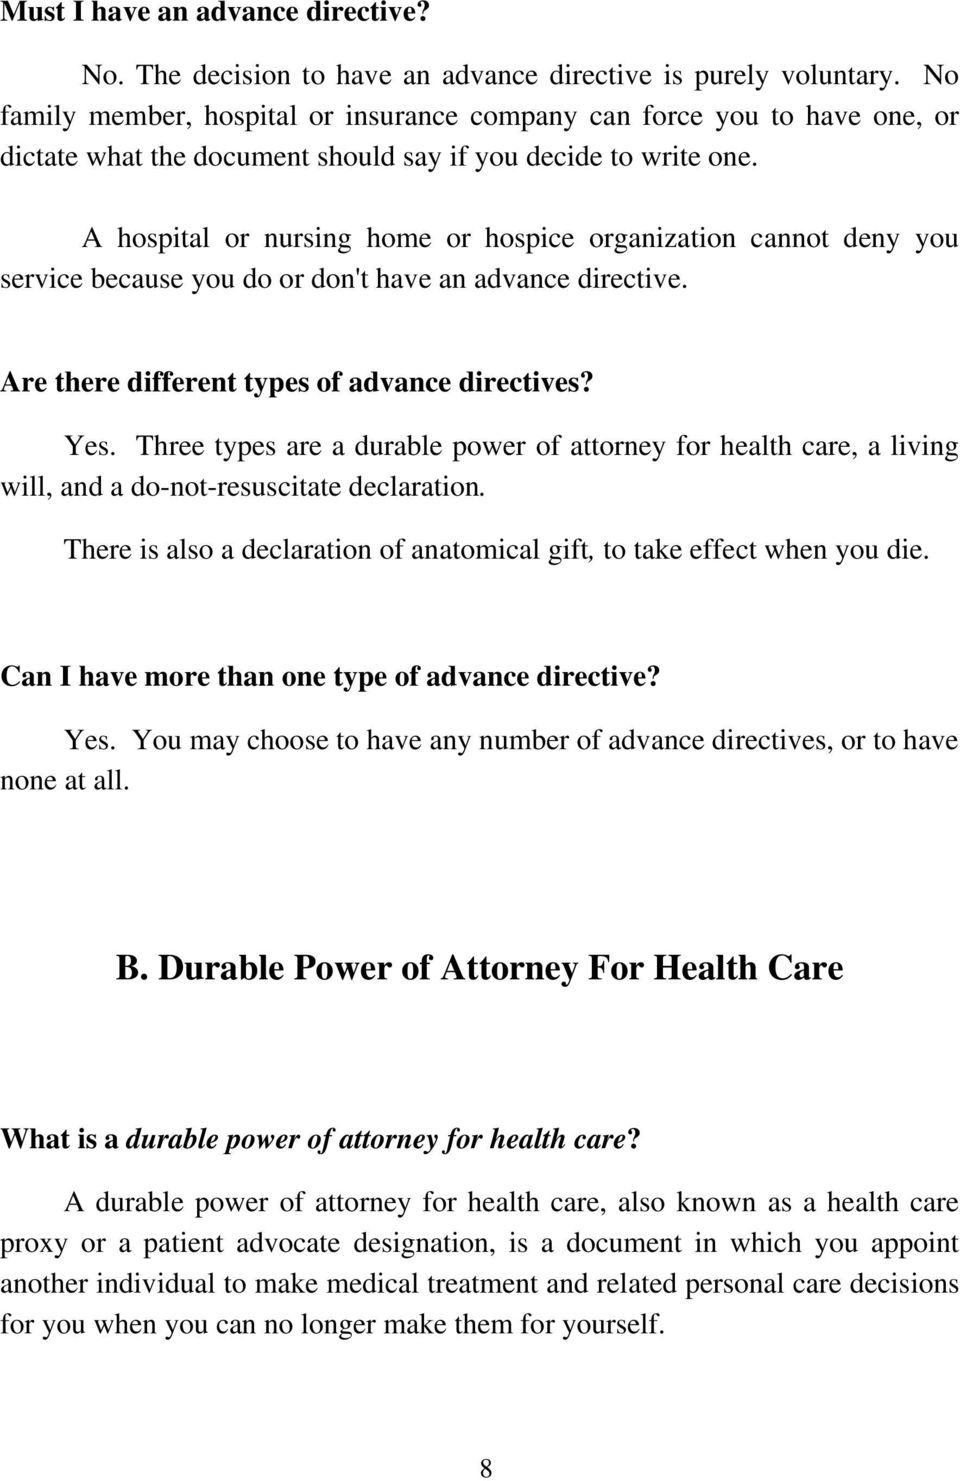 A hospital or nursing home or hospice organization cannot deny you service because you do or don't have an advance directive. Are there different types of advance directives? Yes.